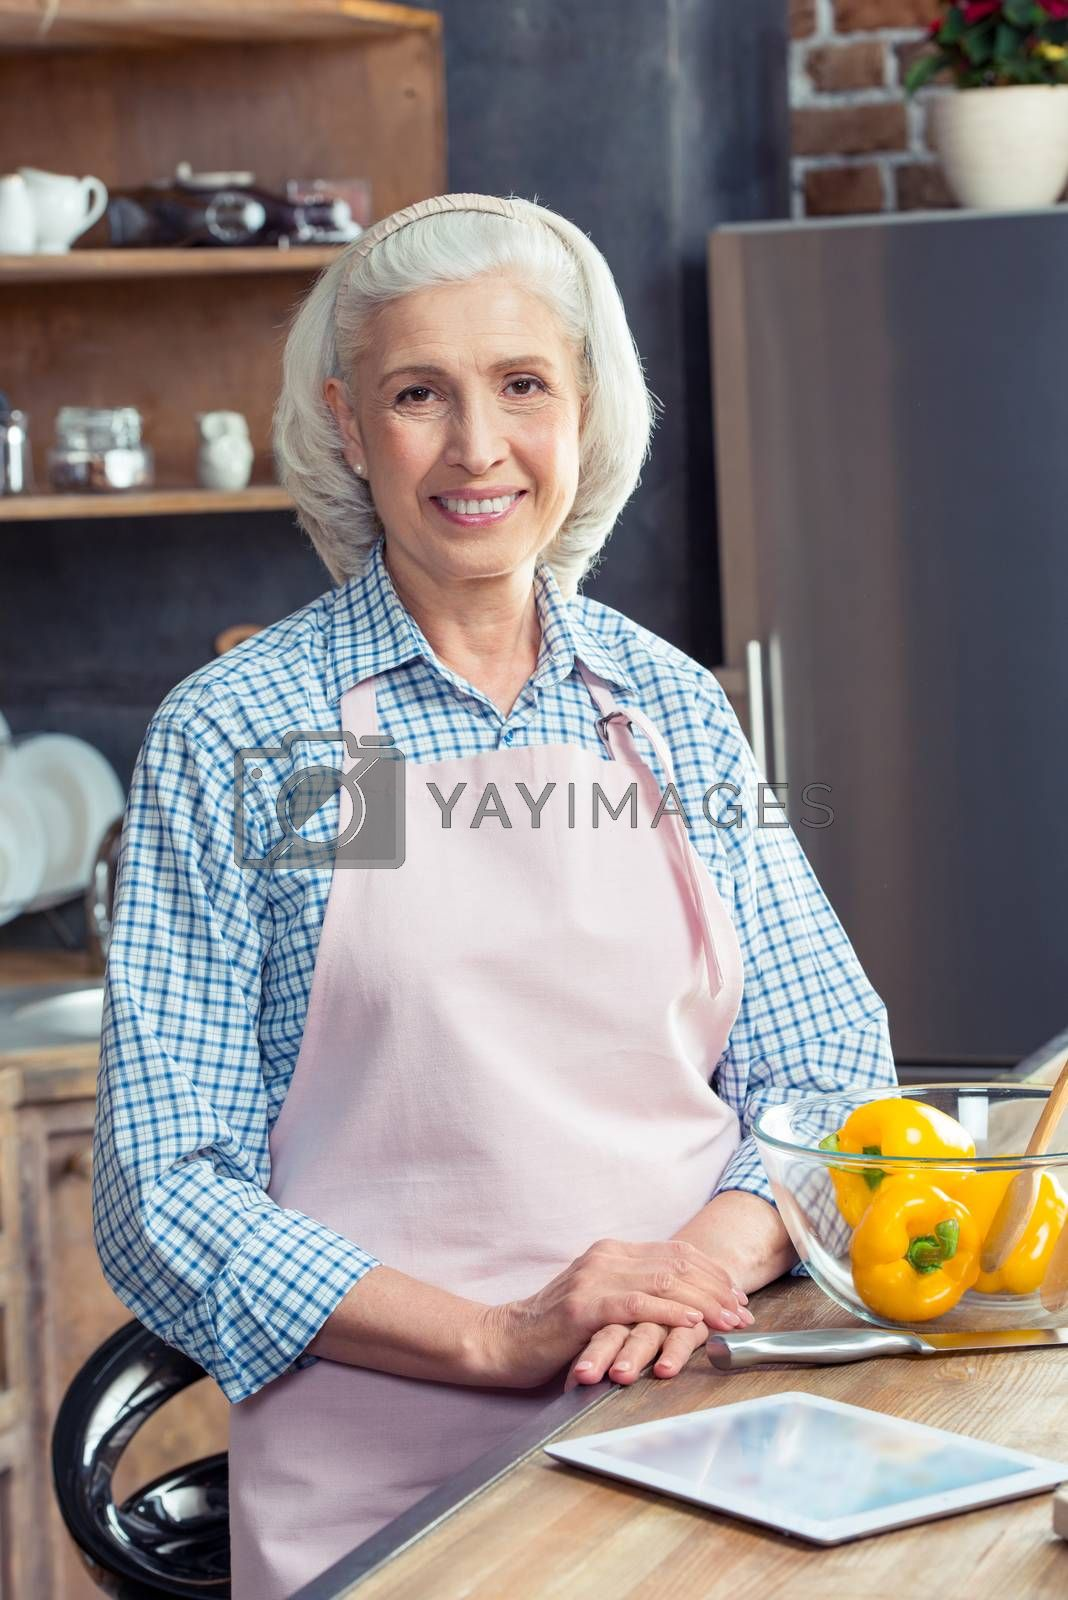 Senior woman in apron smiling at camera in kitchen